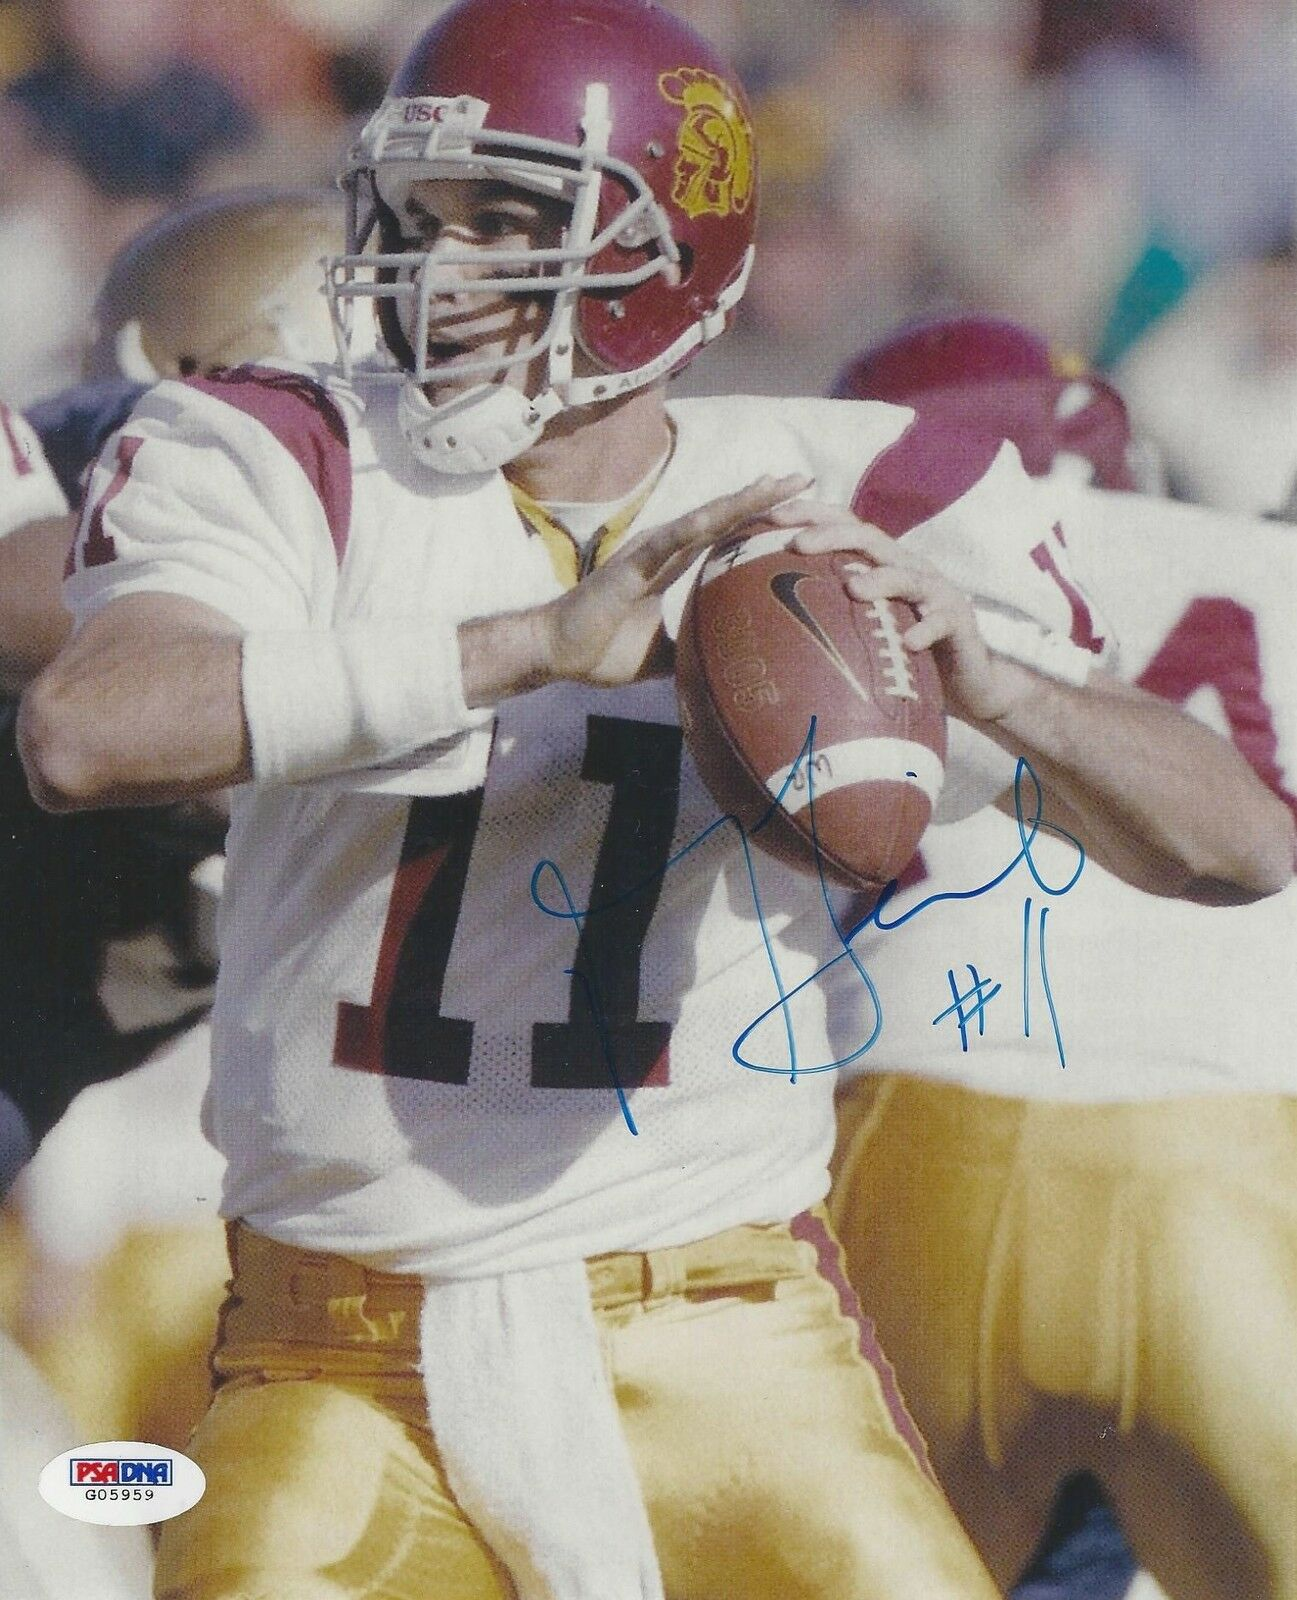 Matt Leinart USC Trojans signed 8x10 photo PSA/DNA #G05959